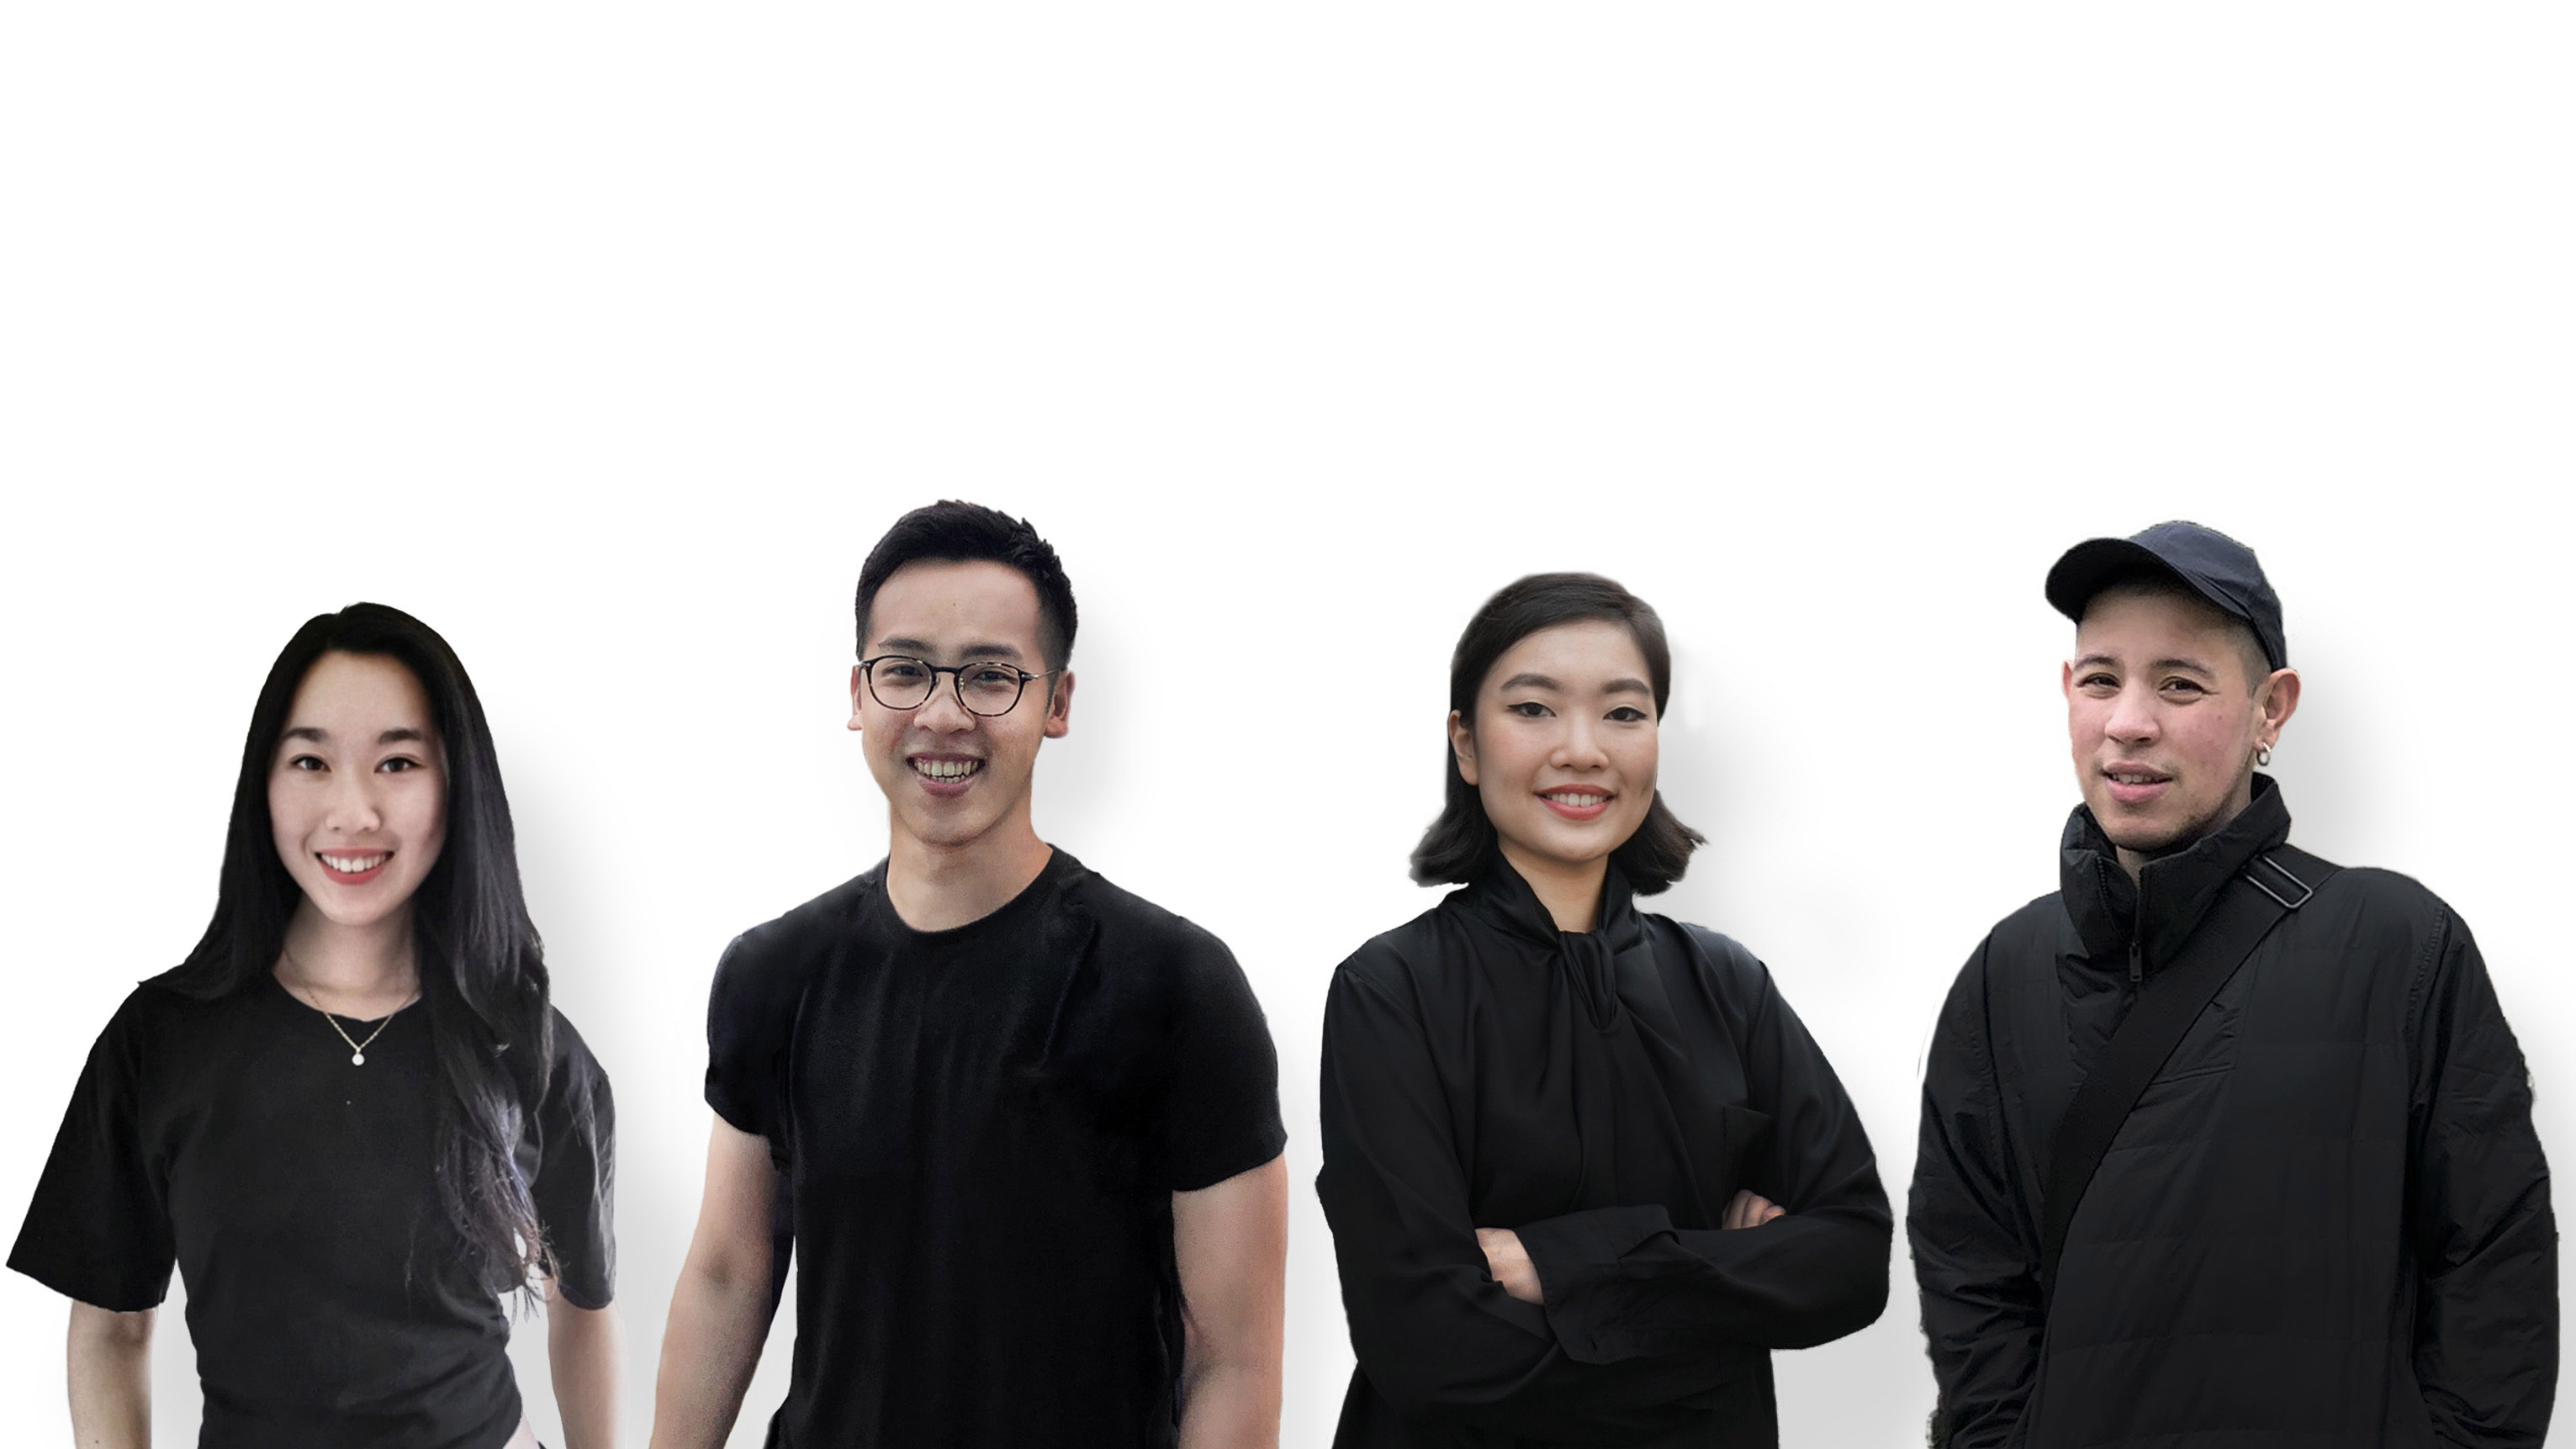 2nd awarded team of kaira looro architecture competition 2021 Clarisse Gono, Tsunxian Lee, Nathan Mehl, Katherine Huang